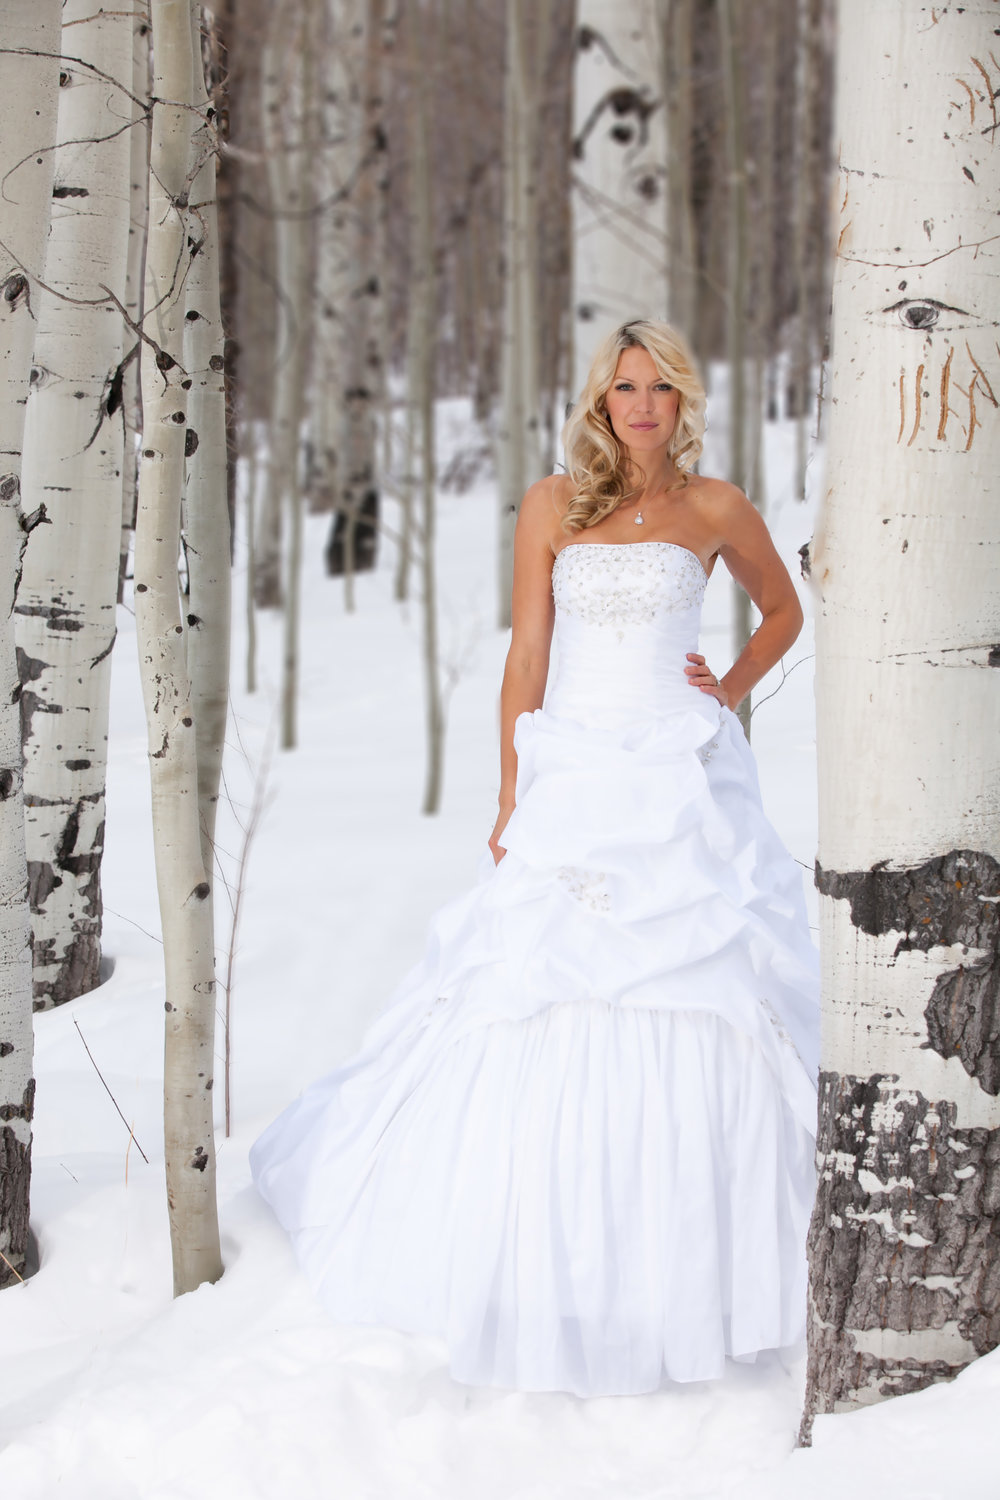 Vail-Colorado-weddings-axelphoto.jpg